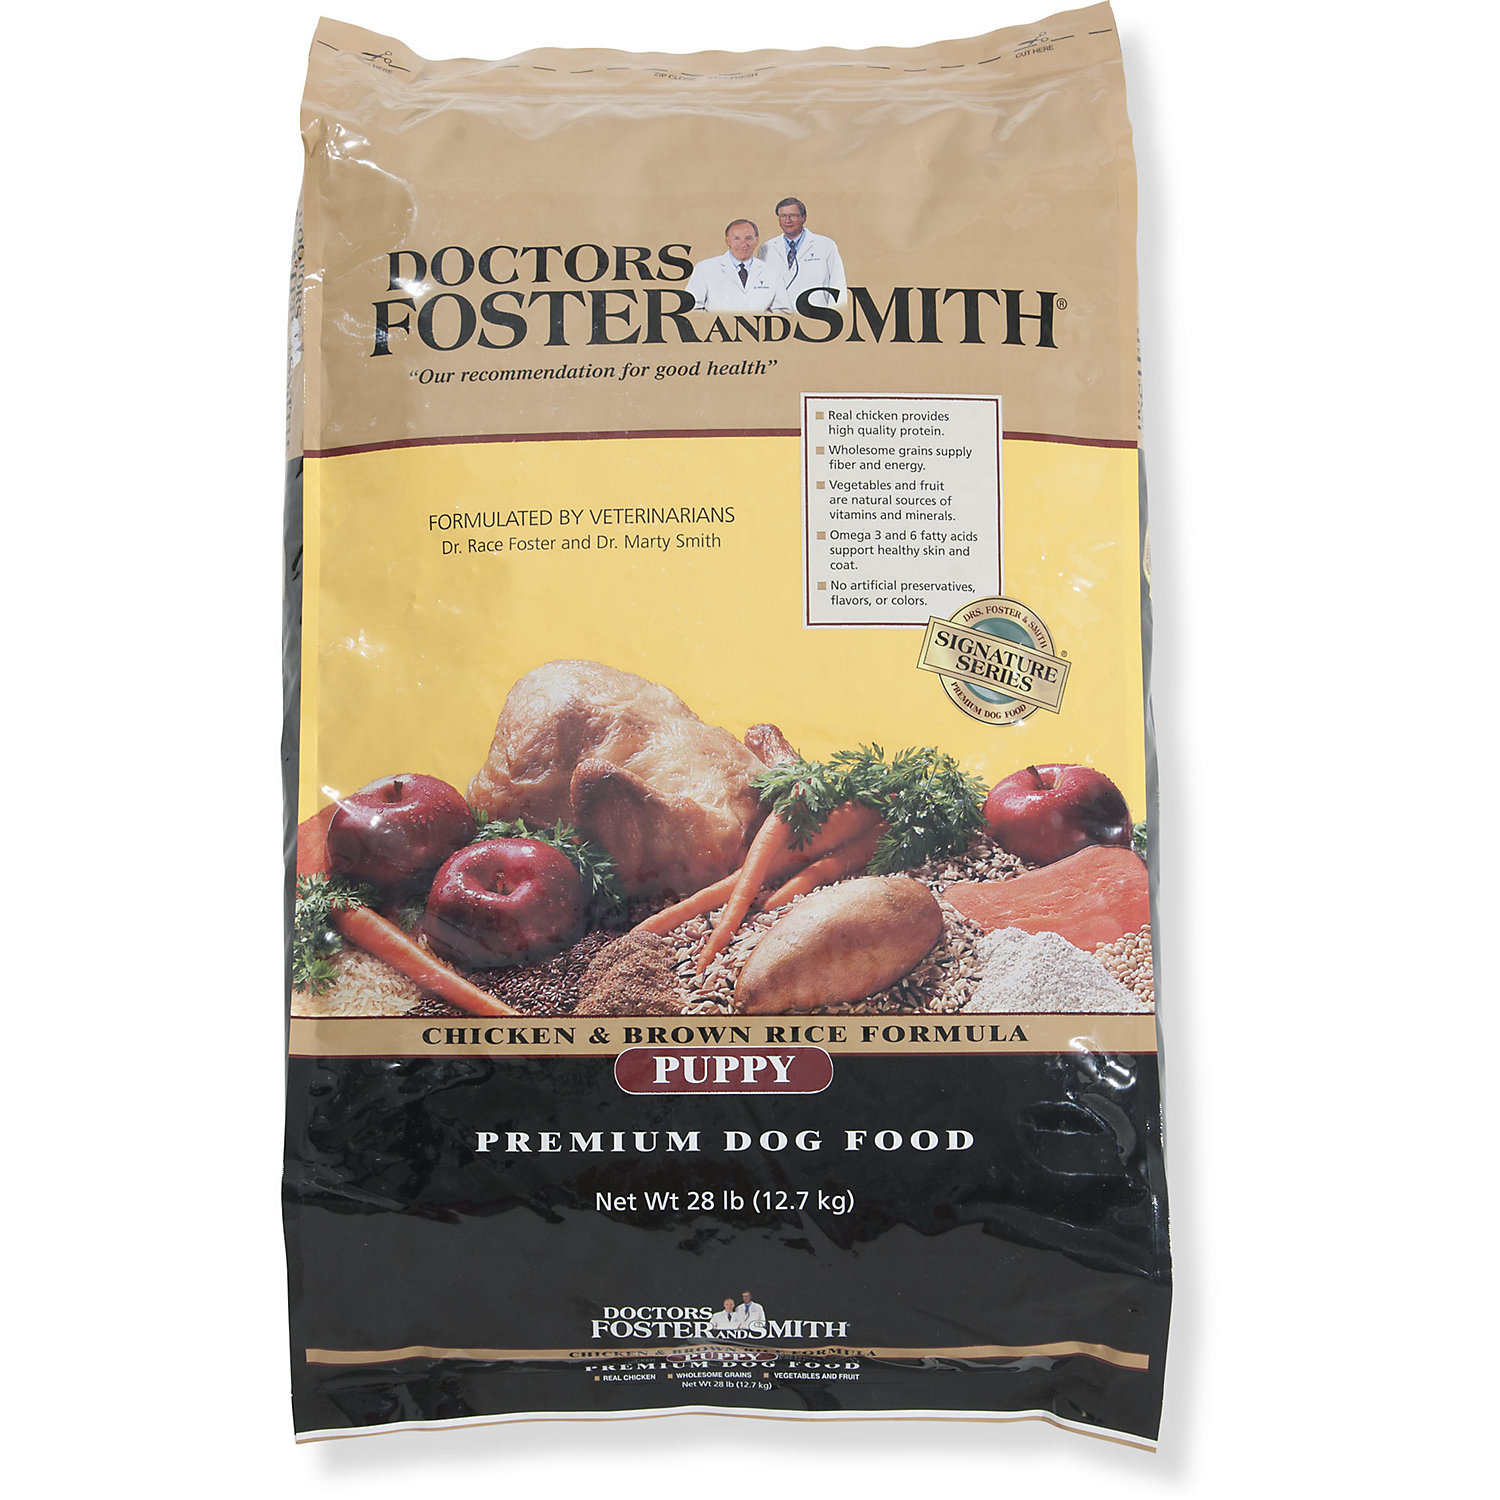 Drs. Foster and Smith Signature Series Dry Puppy Food